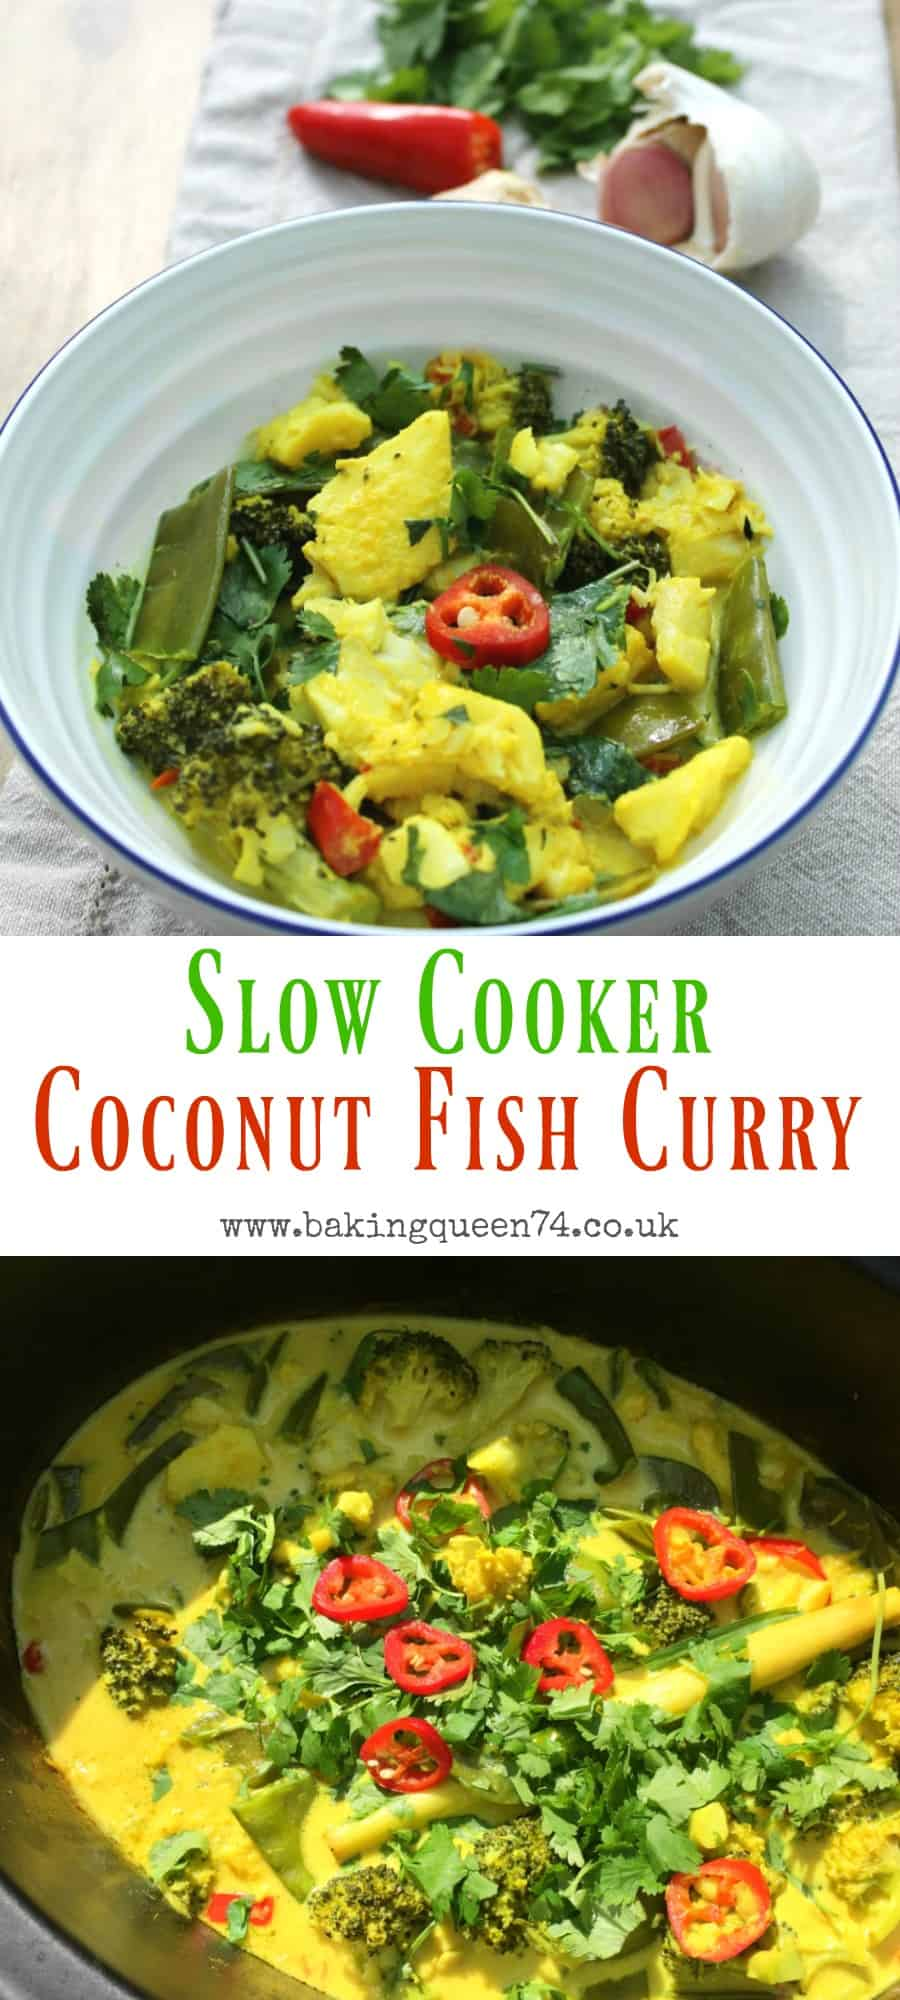 Slow Cooker Coconut Fish Curry